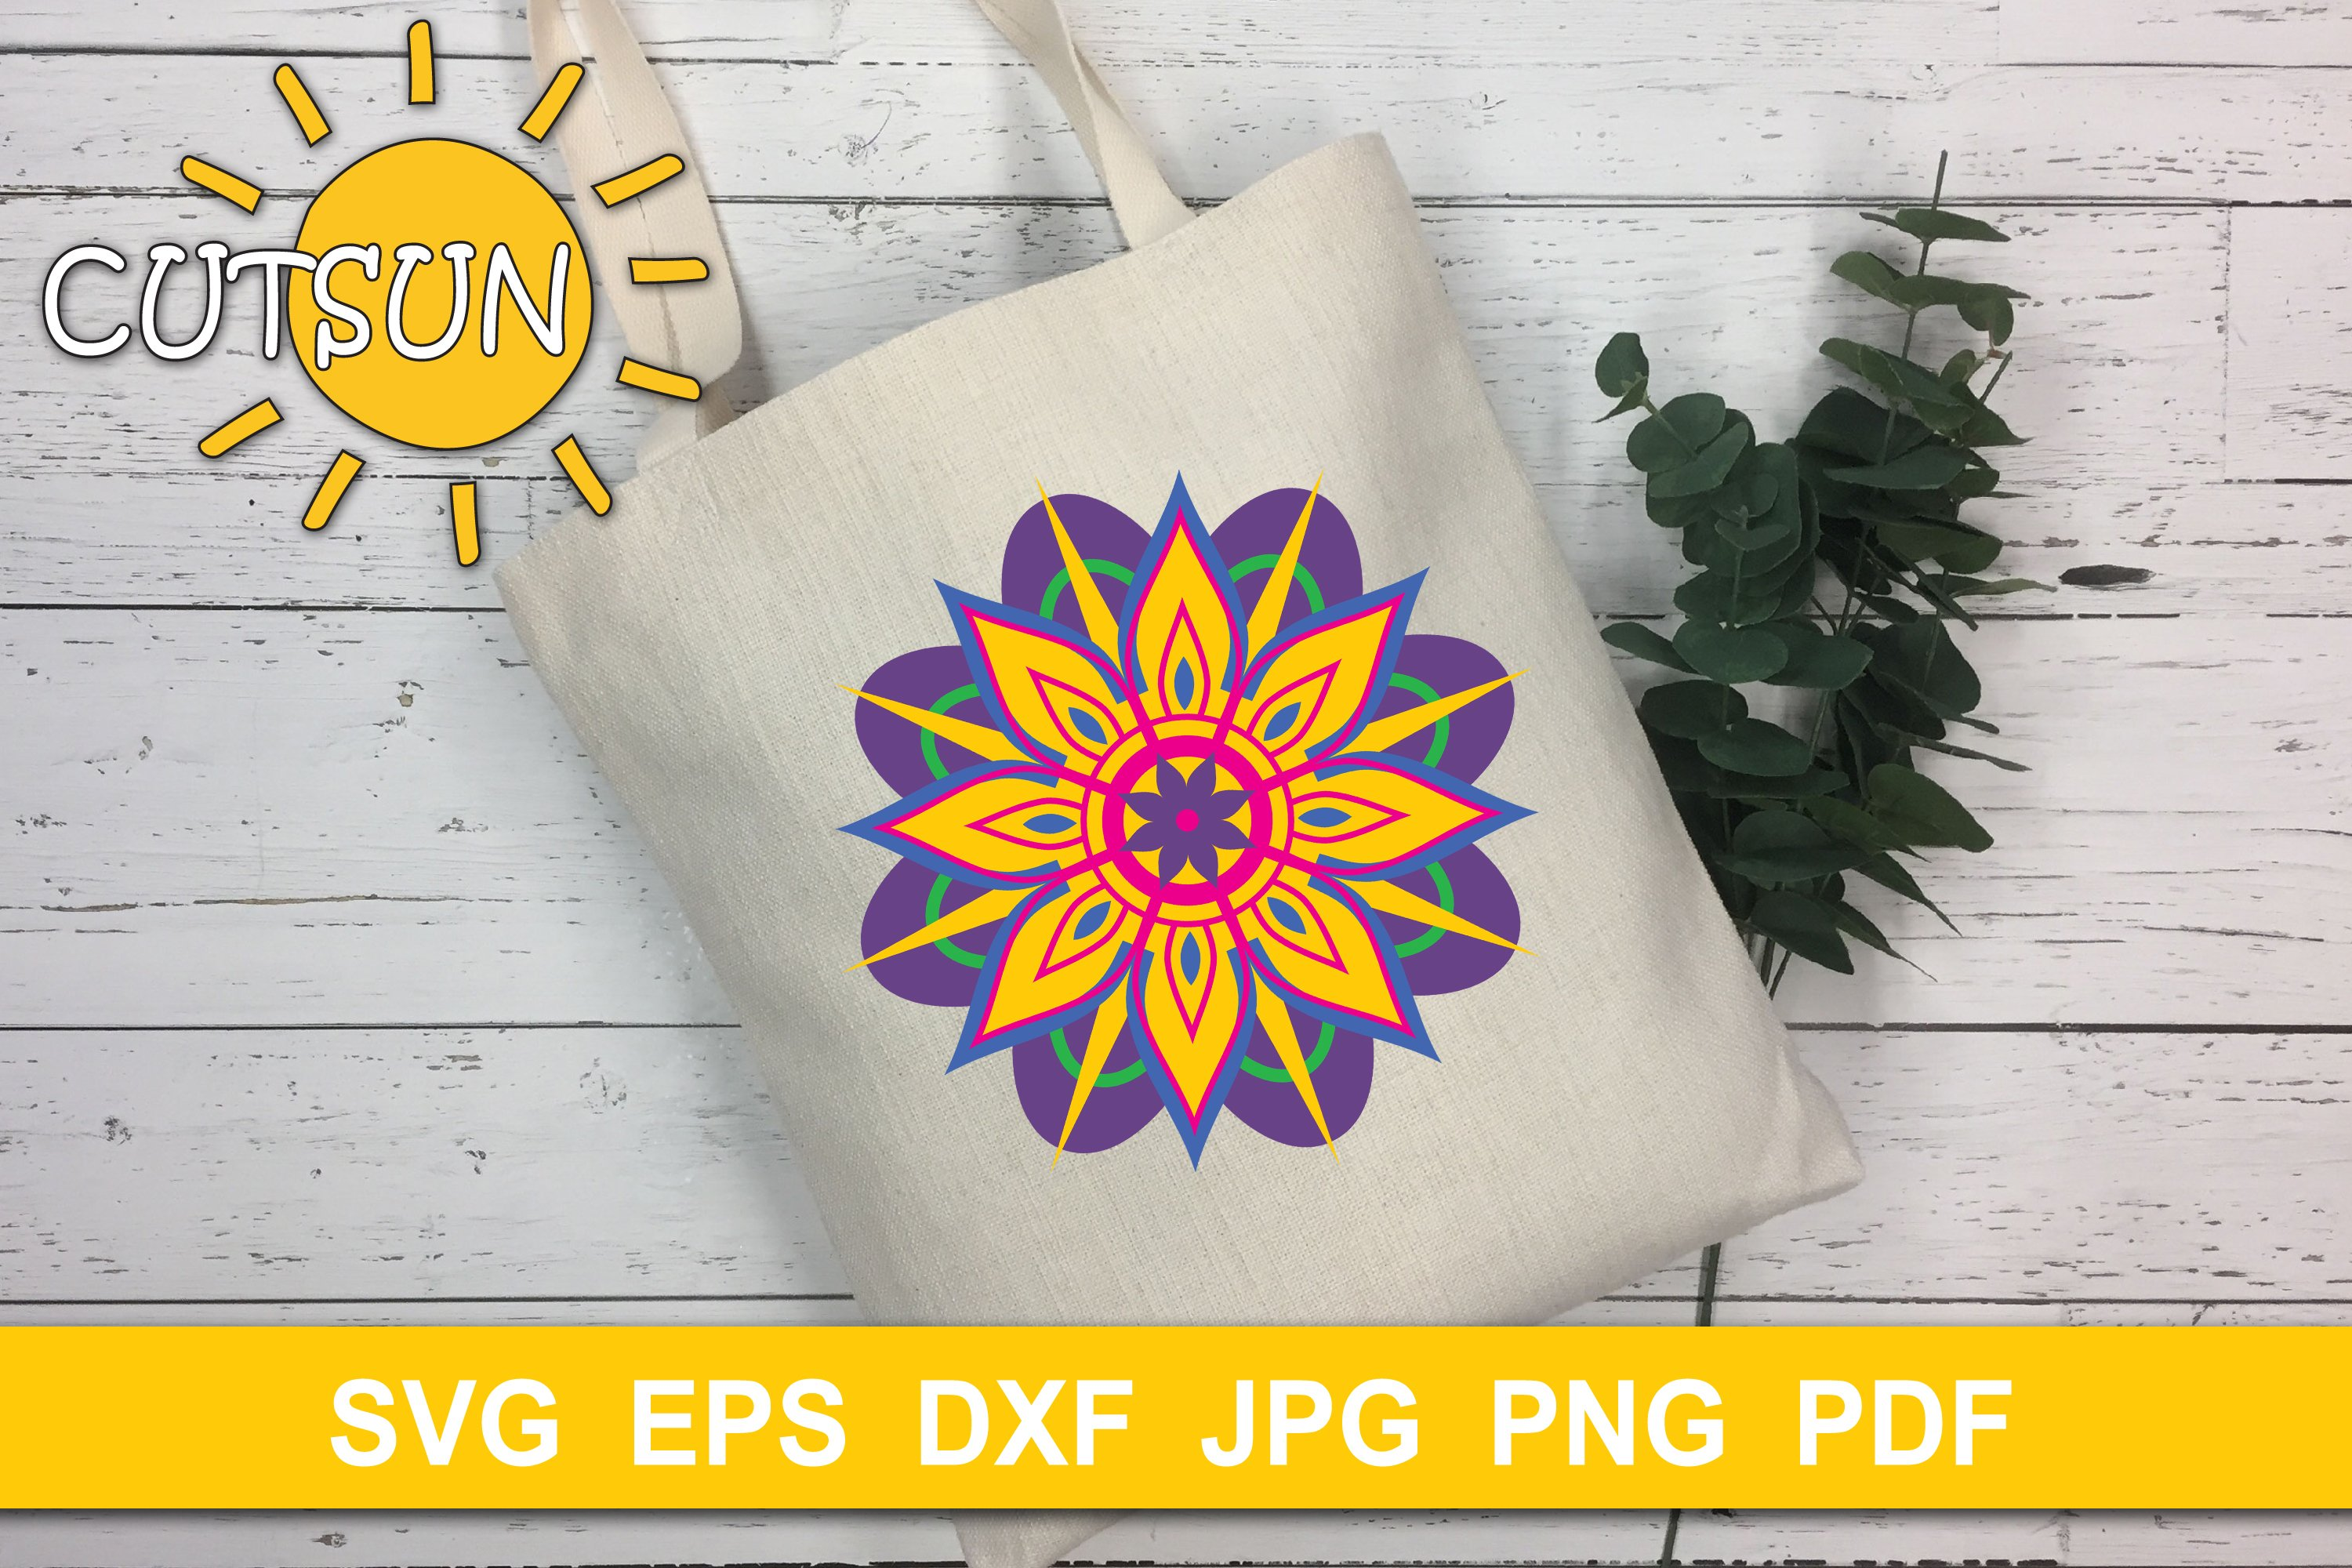 86+ Layered Mandala Svg Free Download – SVG,PNG,DXF,EPS include